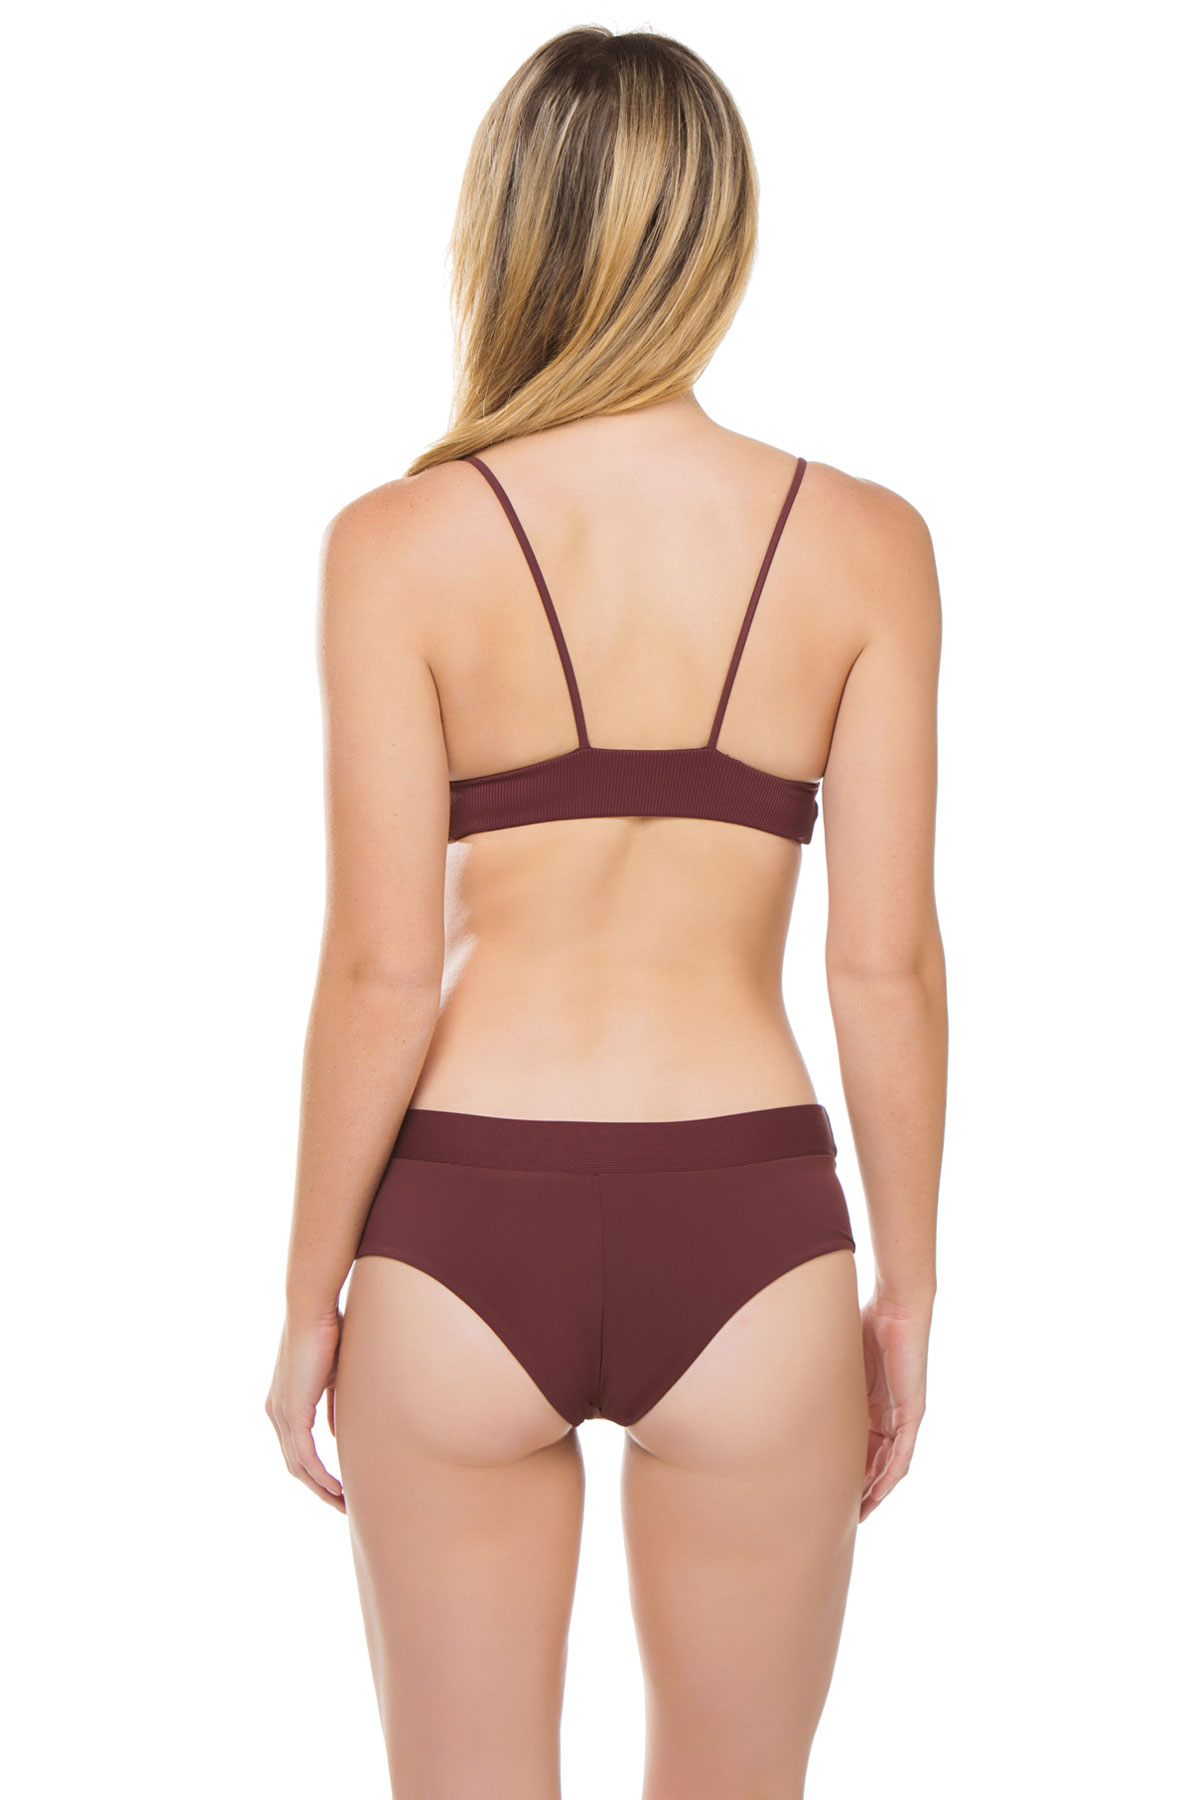 Dana The Delinquent Banded Triangle Bikini Top - Burgundy 6